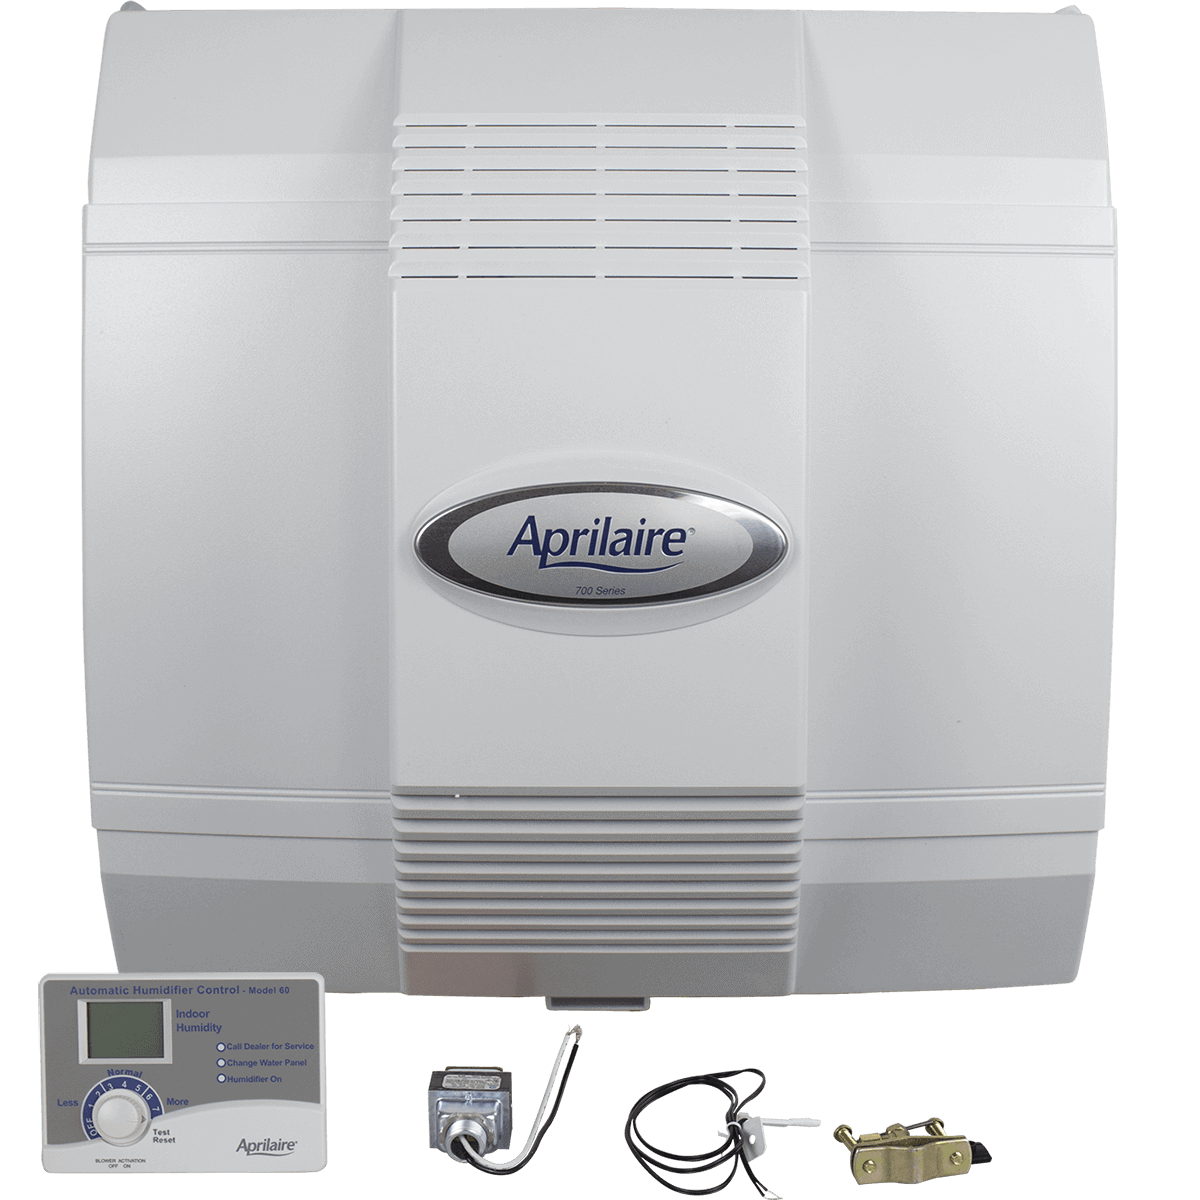 aprilaire model 700 whole house humidifier review aprilaire 600 700 aprilaire 700 large fan power